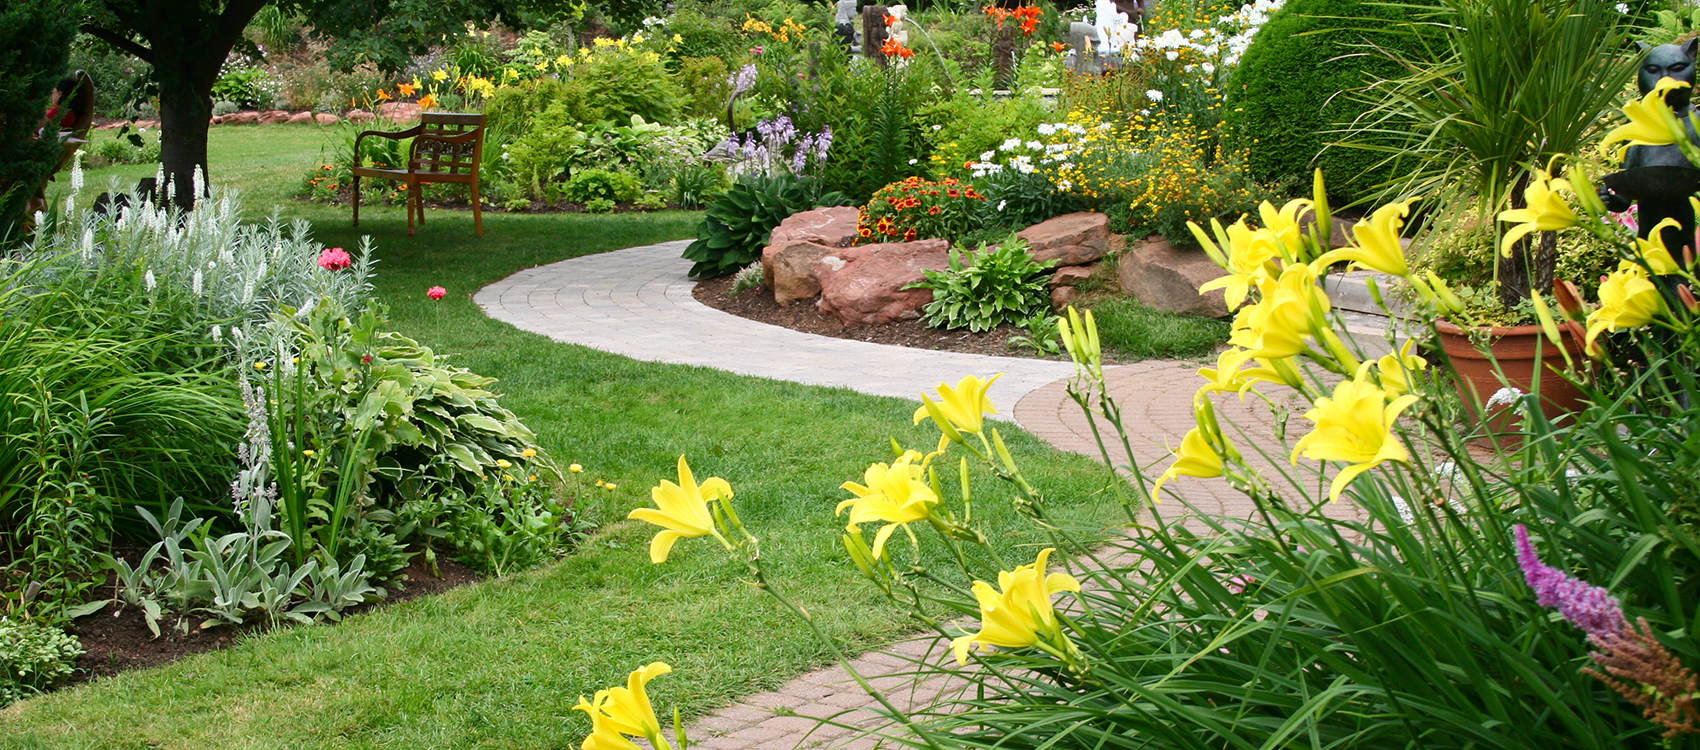 Request an estimate zionsville landscaping services for Gardening services